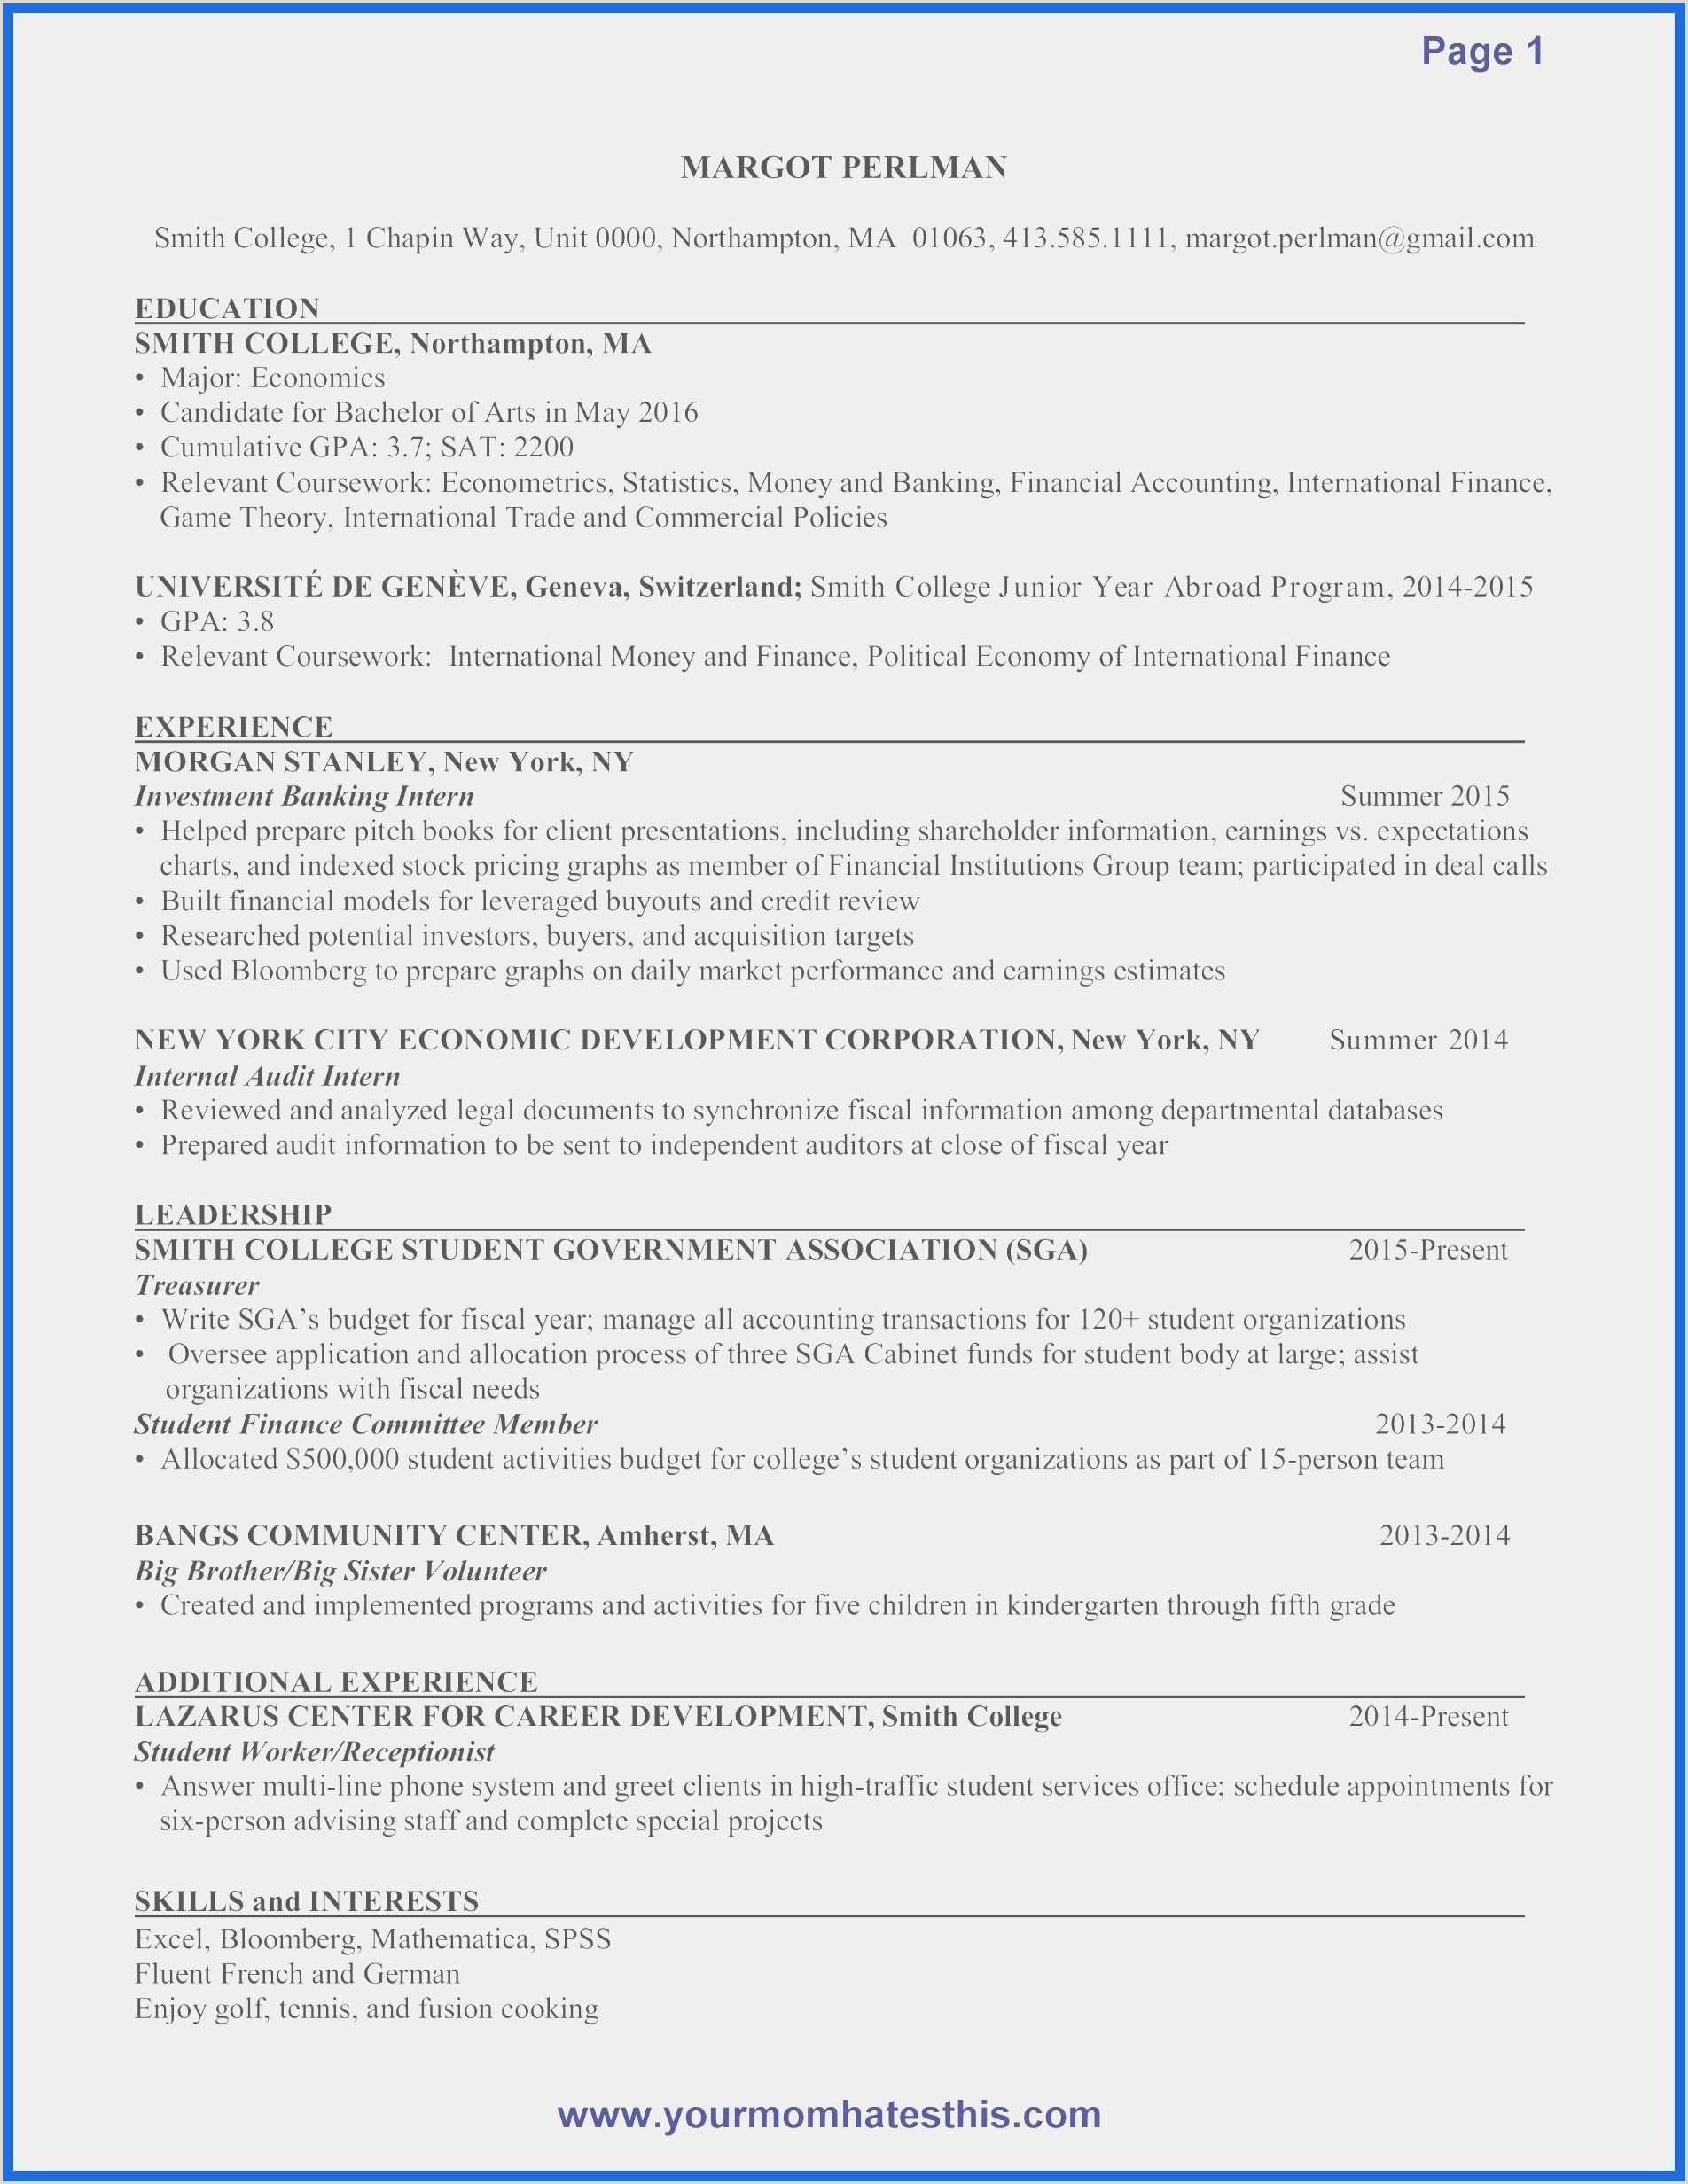 Professional Cv format for Receptionist Cv Models Collections De ¢Ëœ 40 Cv Resume Template Ekla Kerlann